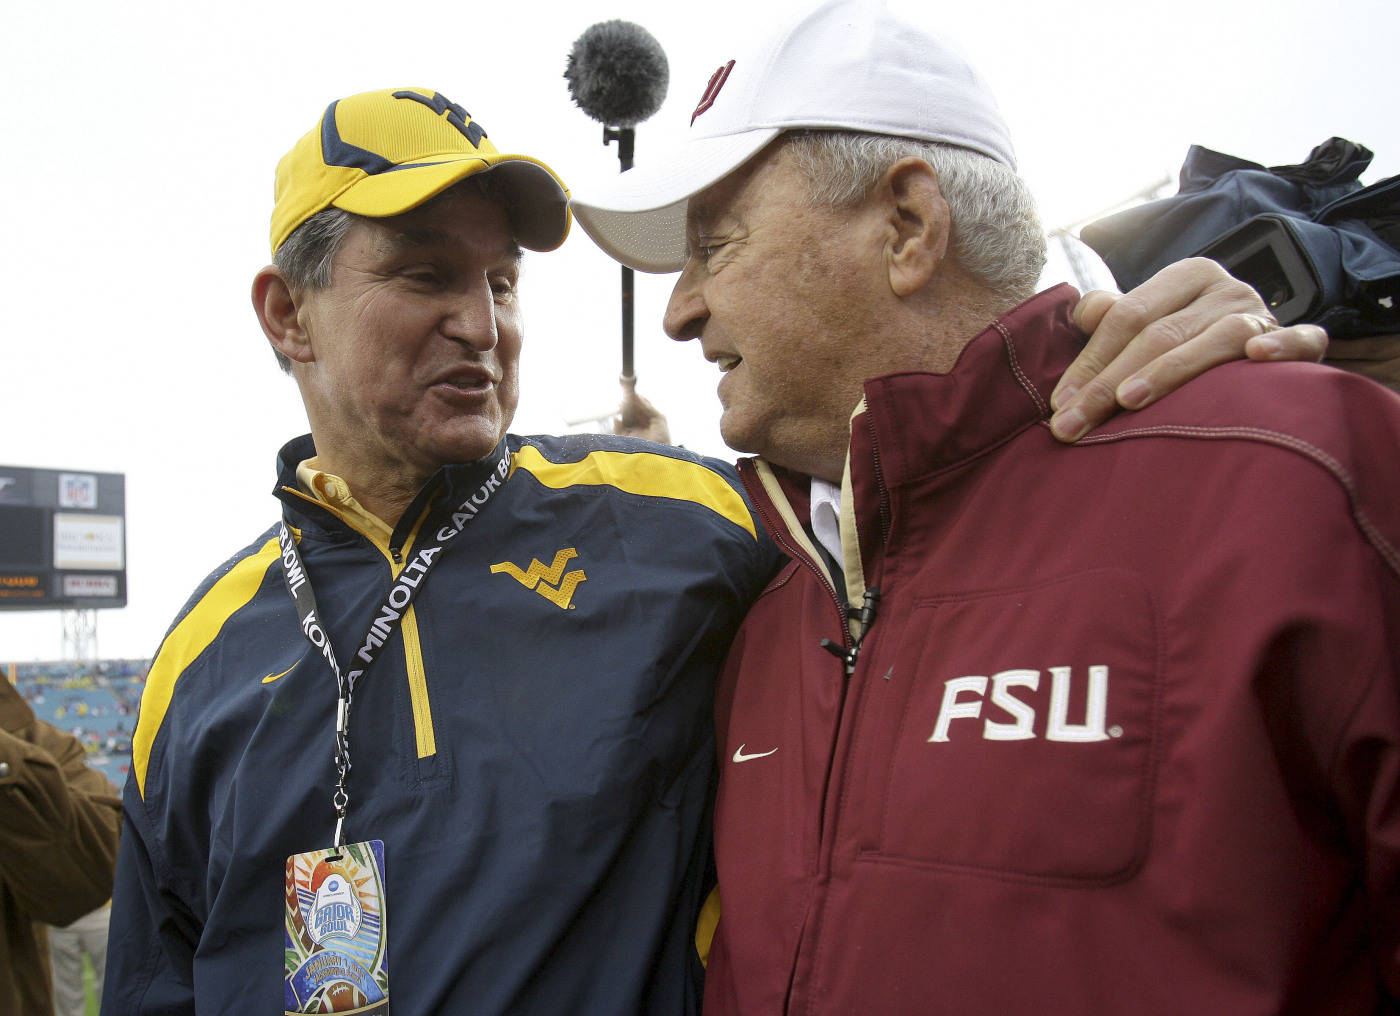 Florida State head coach, Bobby Bowden, right, meets with West Virginia Governor Joe Mansion prior the kickoff of the Gator Bowl NCAA college football game, Friday, Jan. 1, 2010, in Jacksonville, Fla.  Mansion was a former player of Bowden while Bowden coached at West Virginia. (AP Photo/Phil Coale)